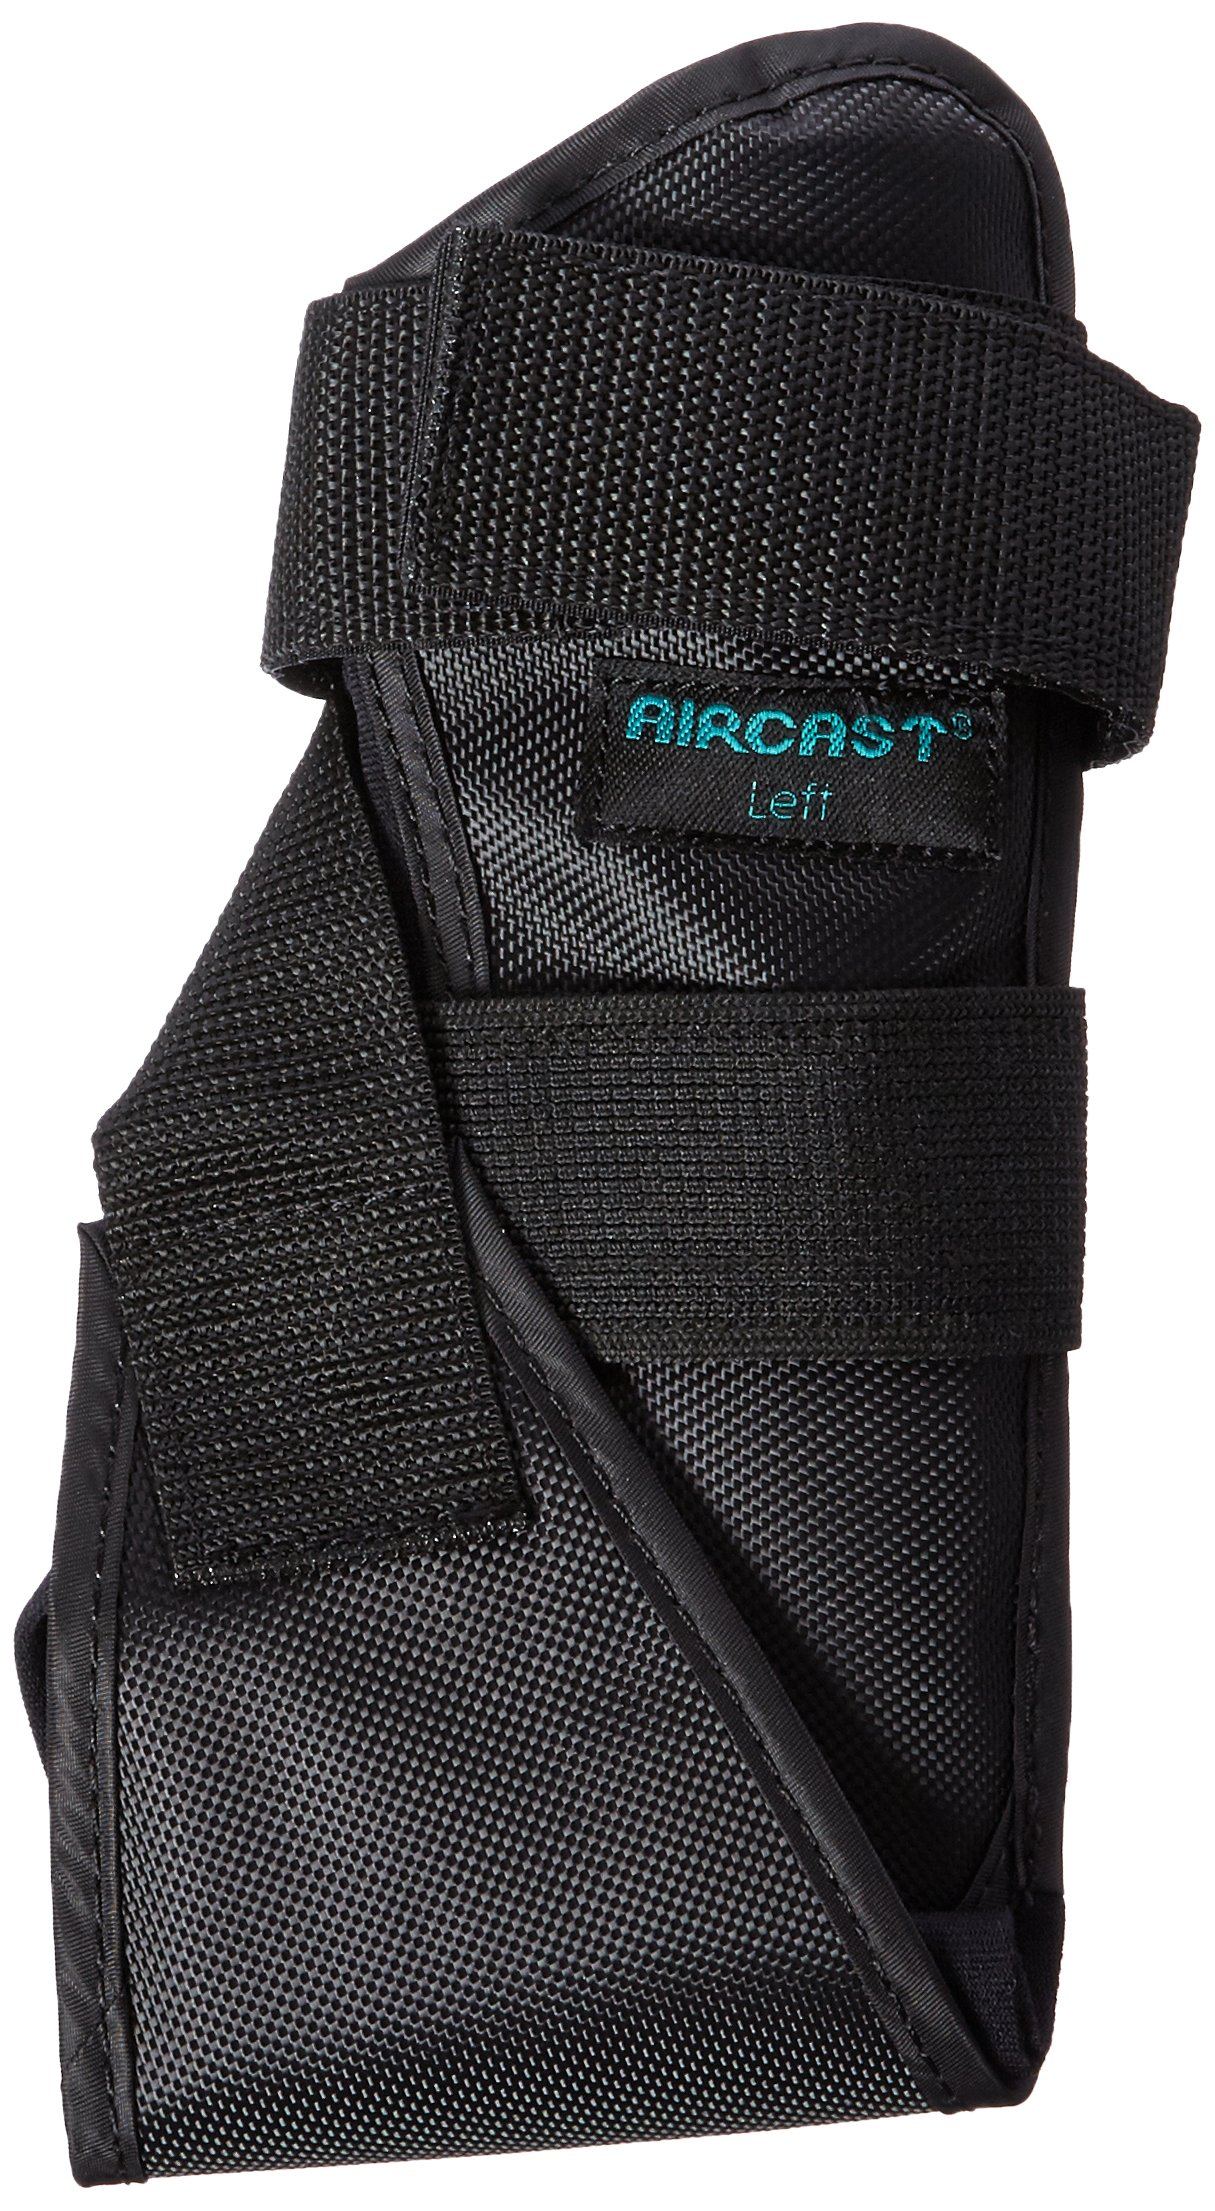 Aircast 02MML Airsport Ankle Brace, Left, Medium